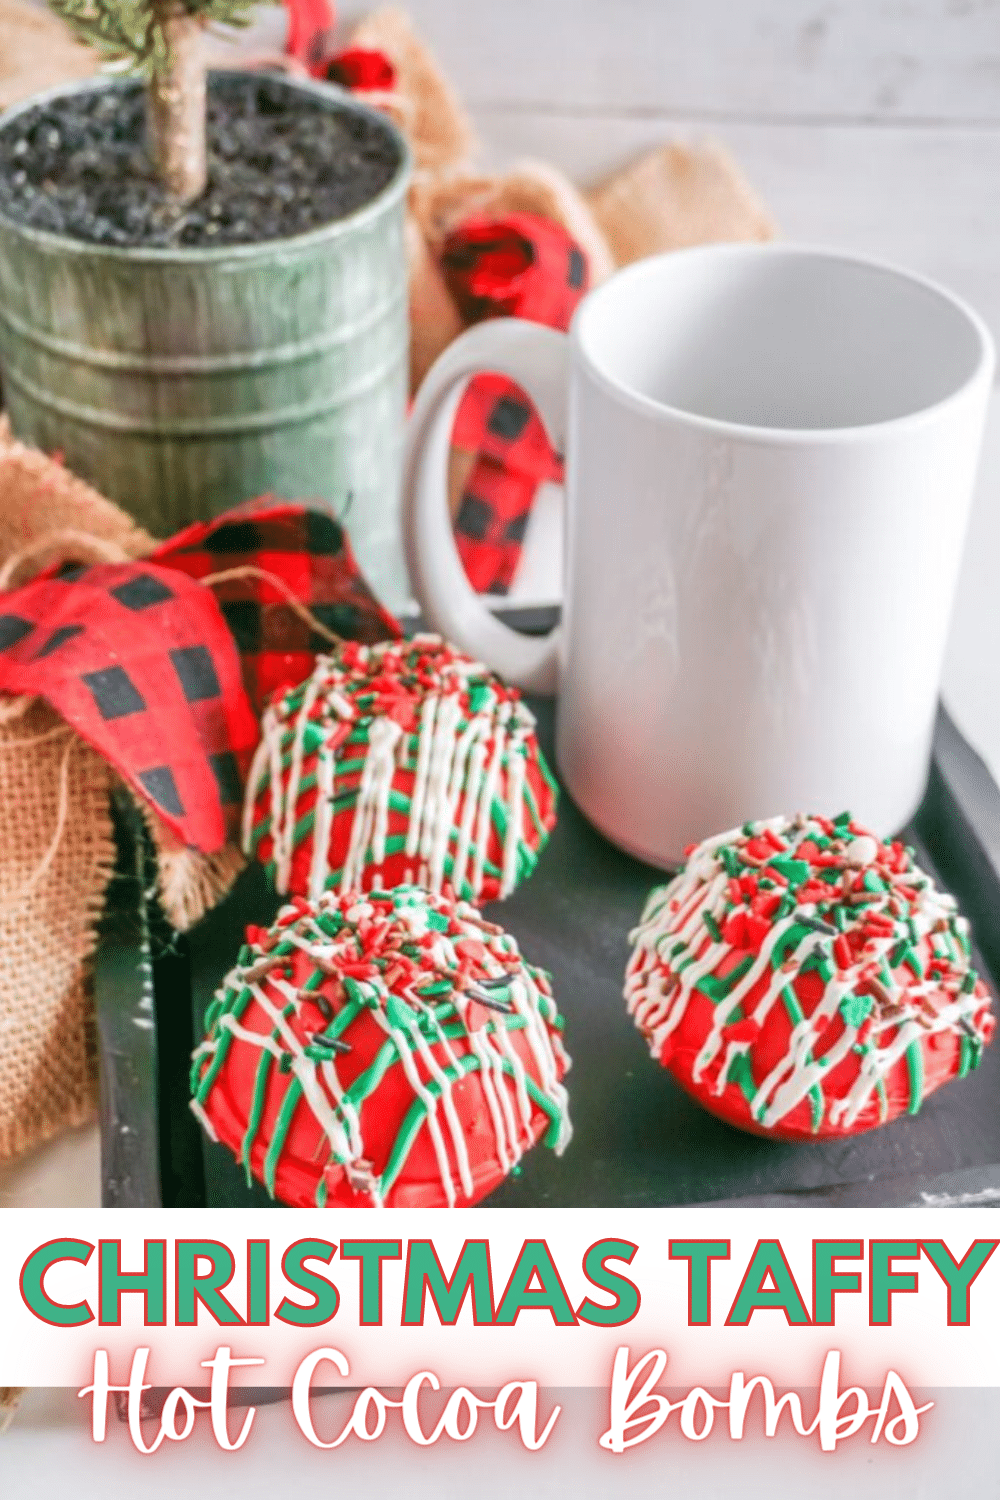 These Christmas Taffy Hot Cocoa Bombs are full of holiday fun! So simple and easy to make for the kids or for homemade gifts! #hotcocoabombs #hotcocoa #christmas #taffy #homemadegift via @wondermomwannab